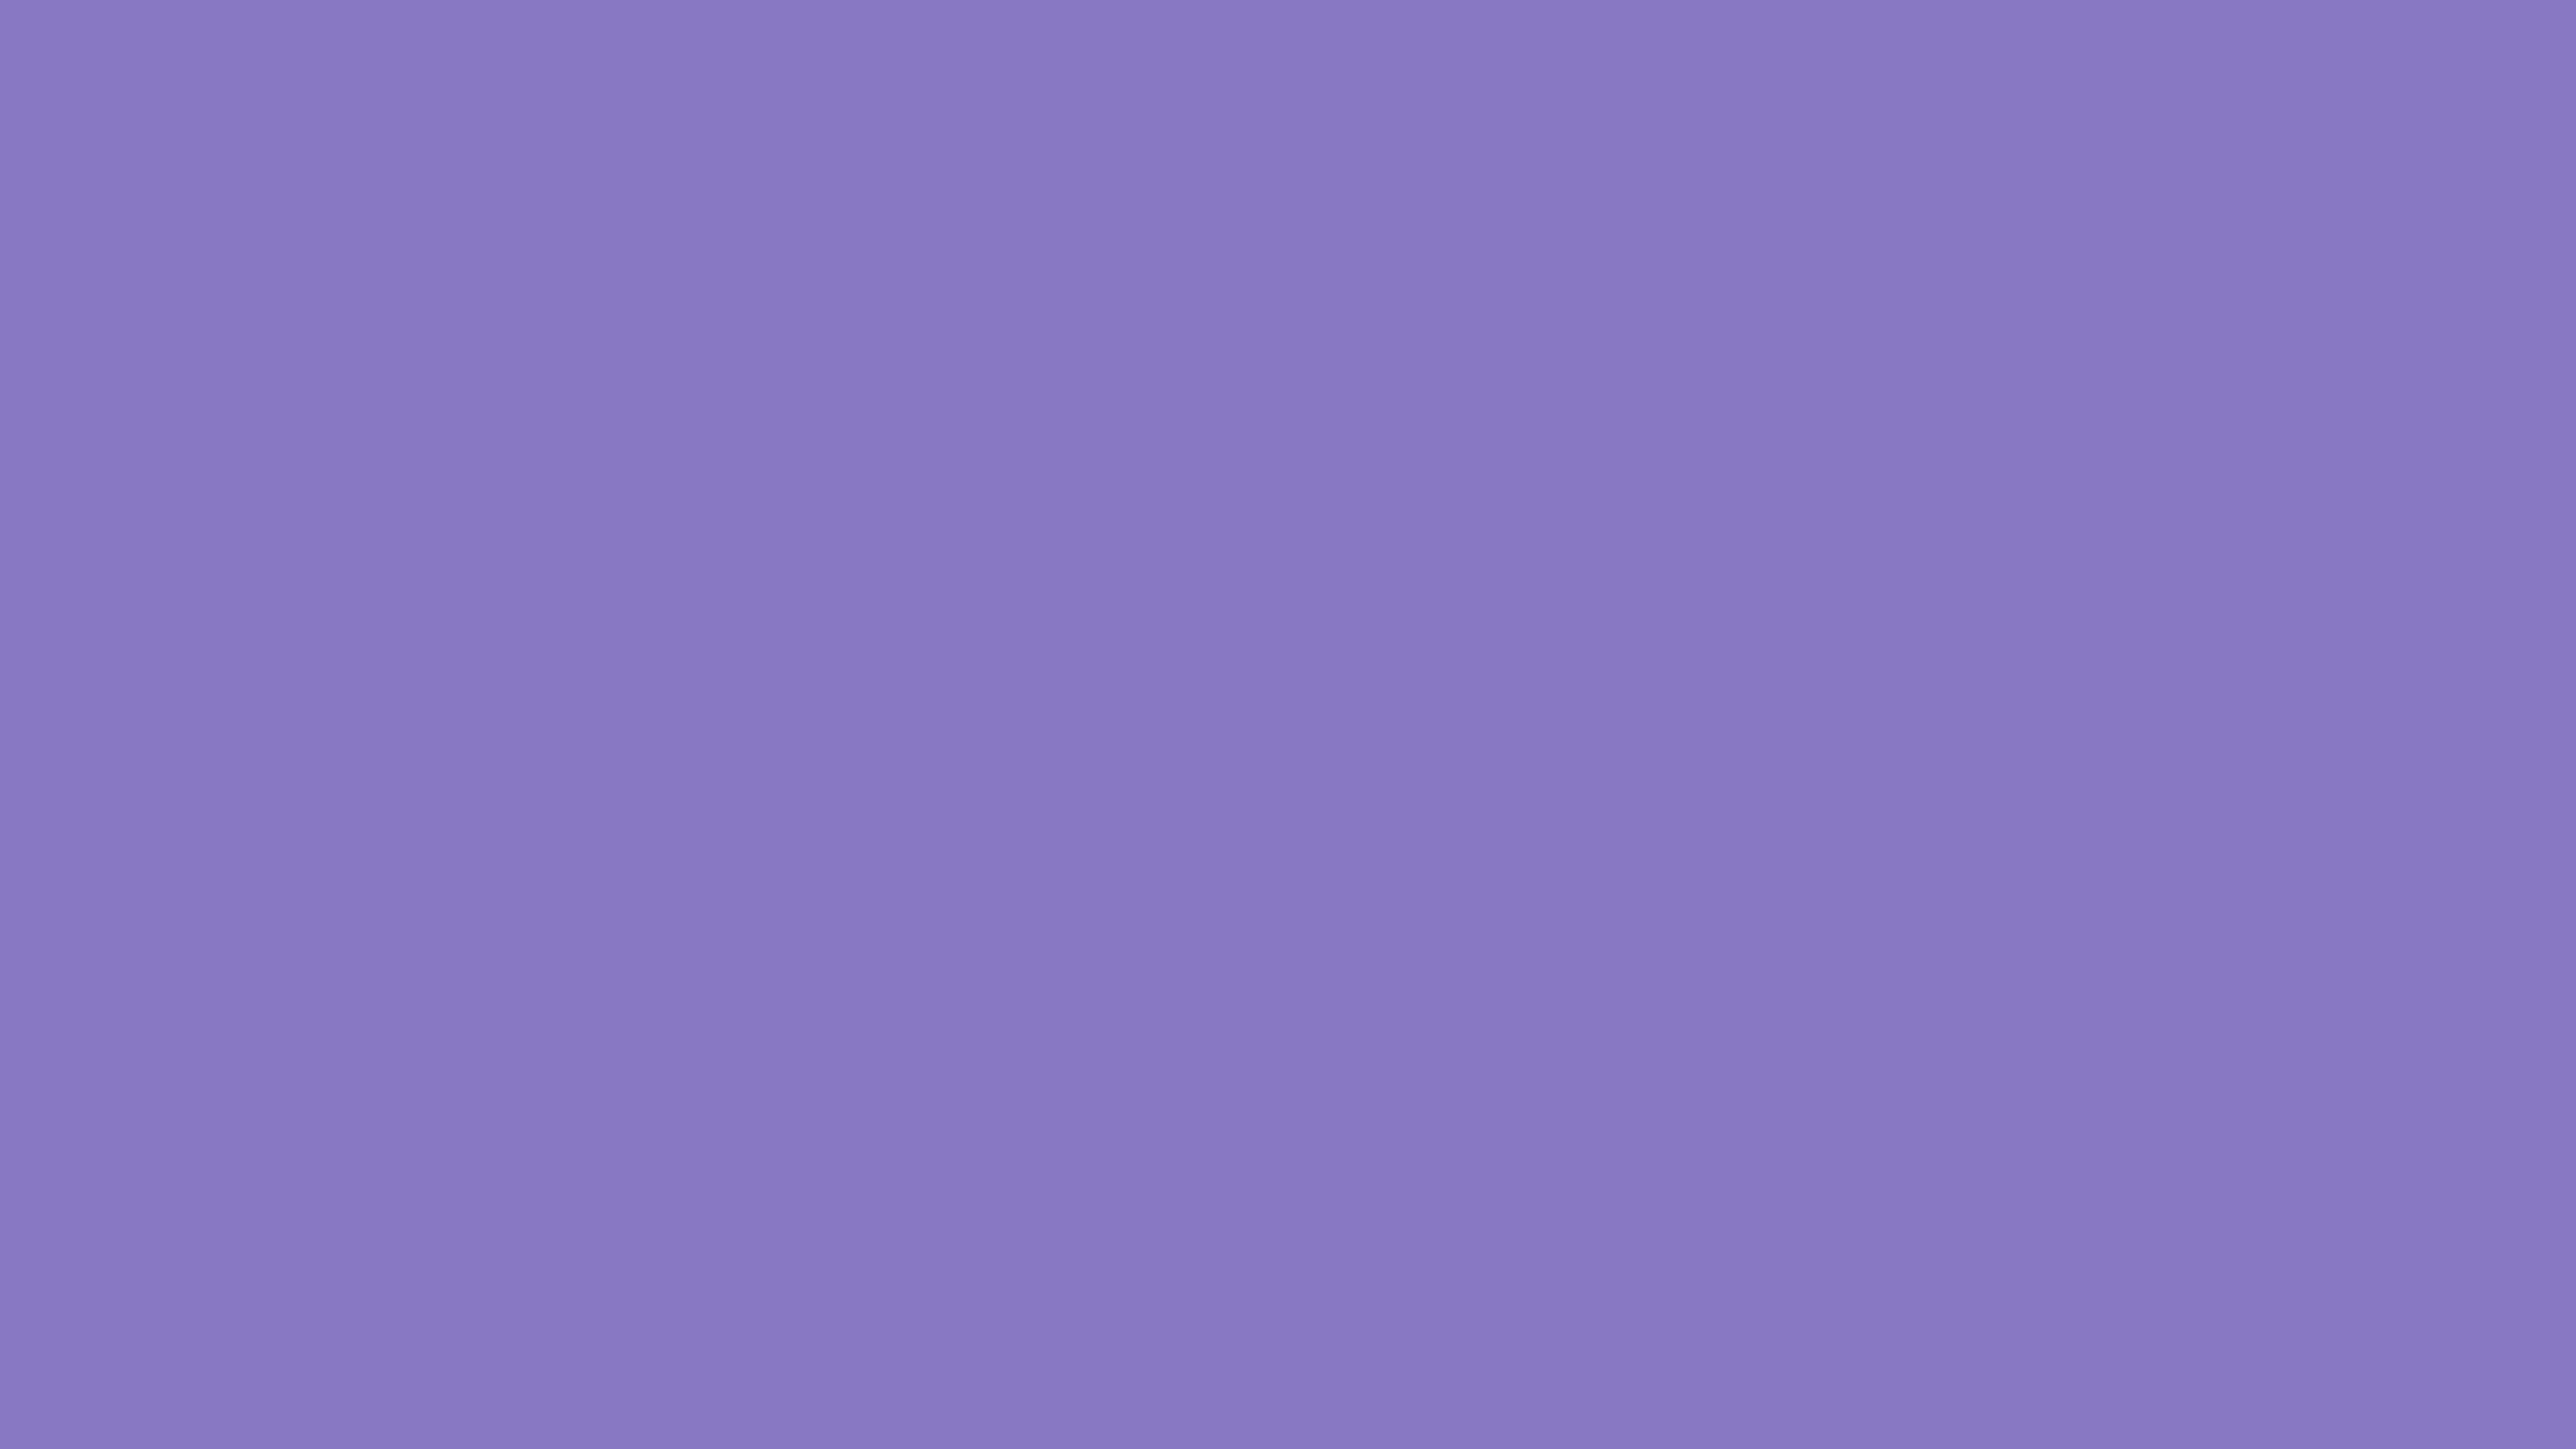 7680x4320 Ube Solid Color Background